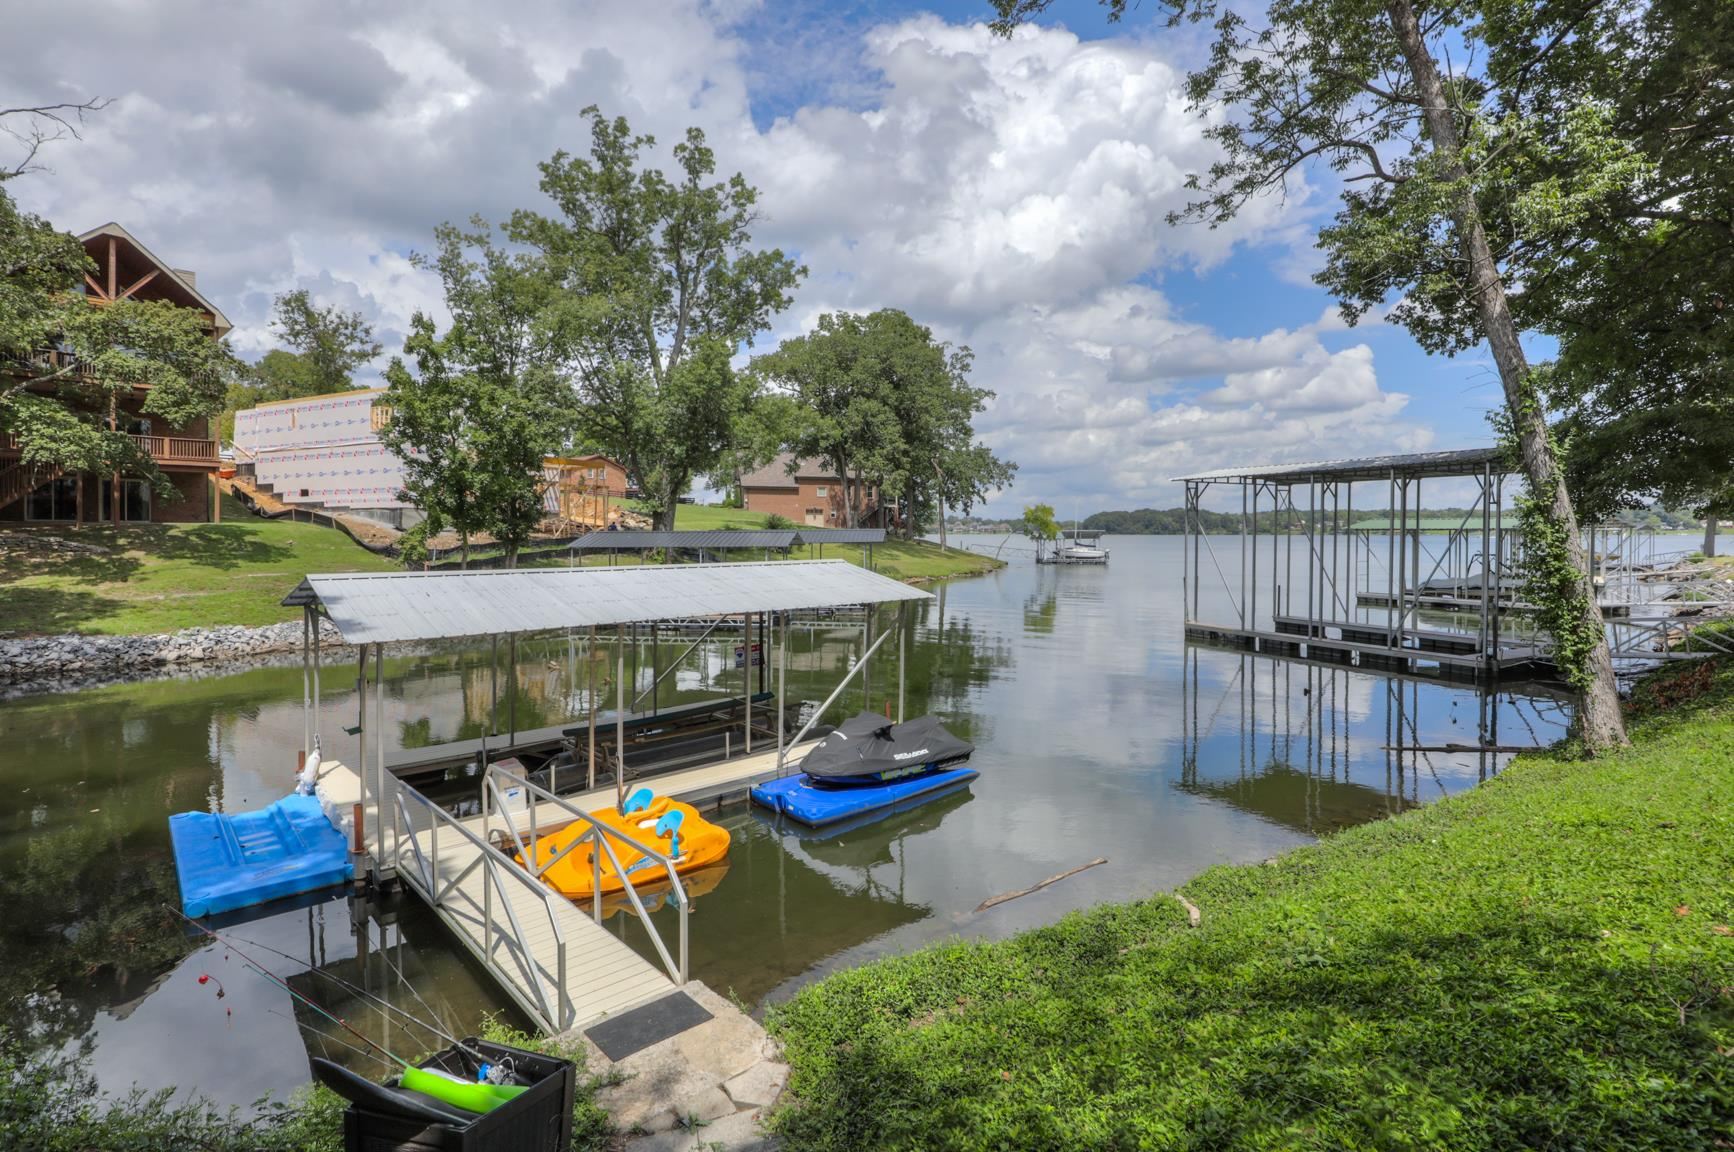 501 Sandy Cv, Old Hickory, TN 37138 - Old Hickory, TN real estate listing